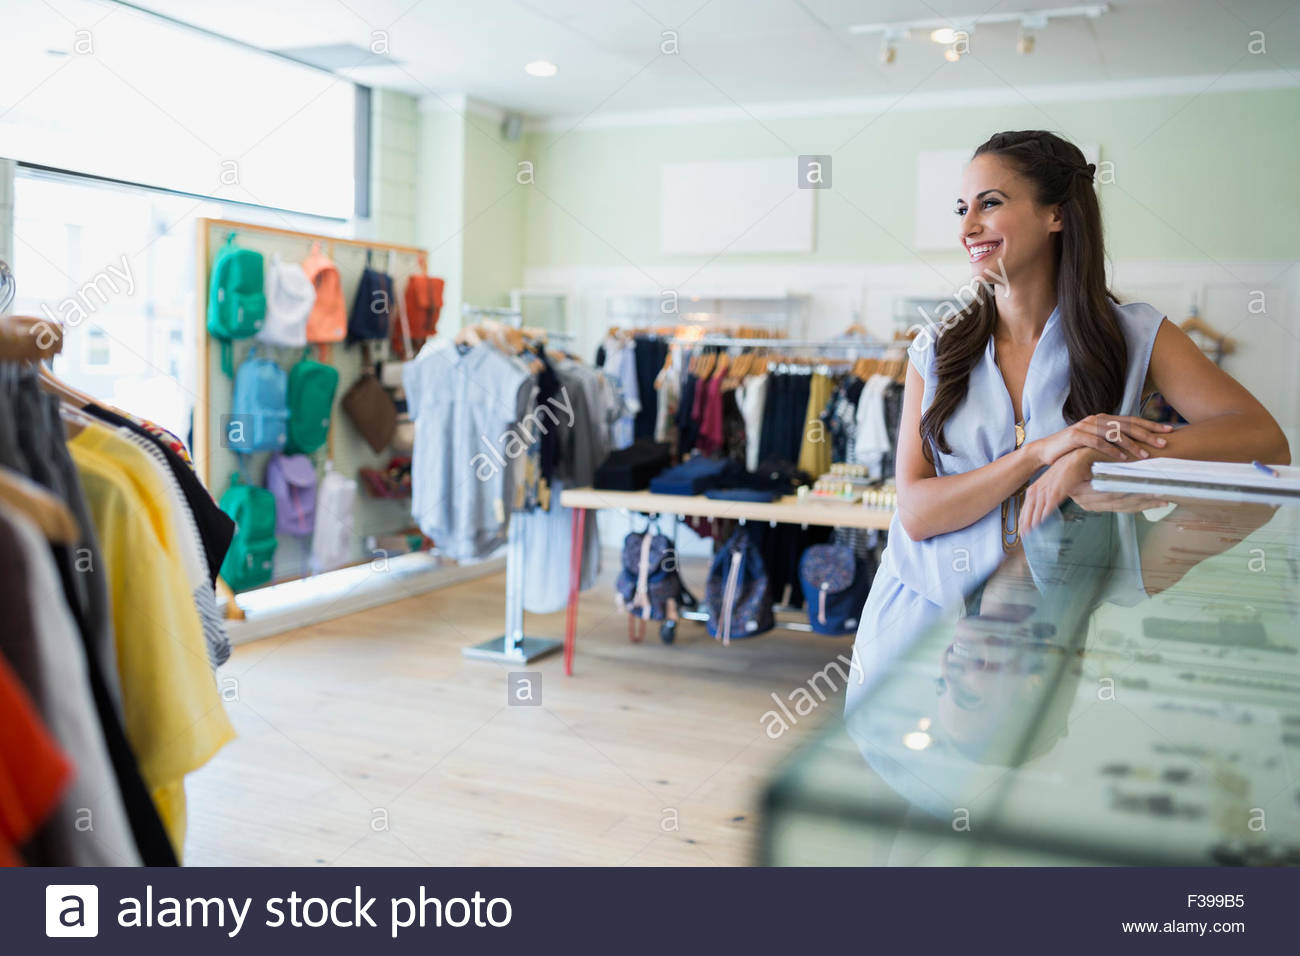 Smiling worker leaning on display case in shop - Stock Image